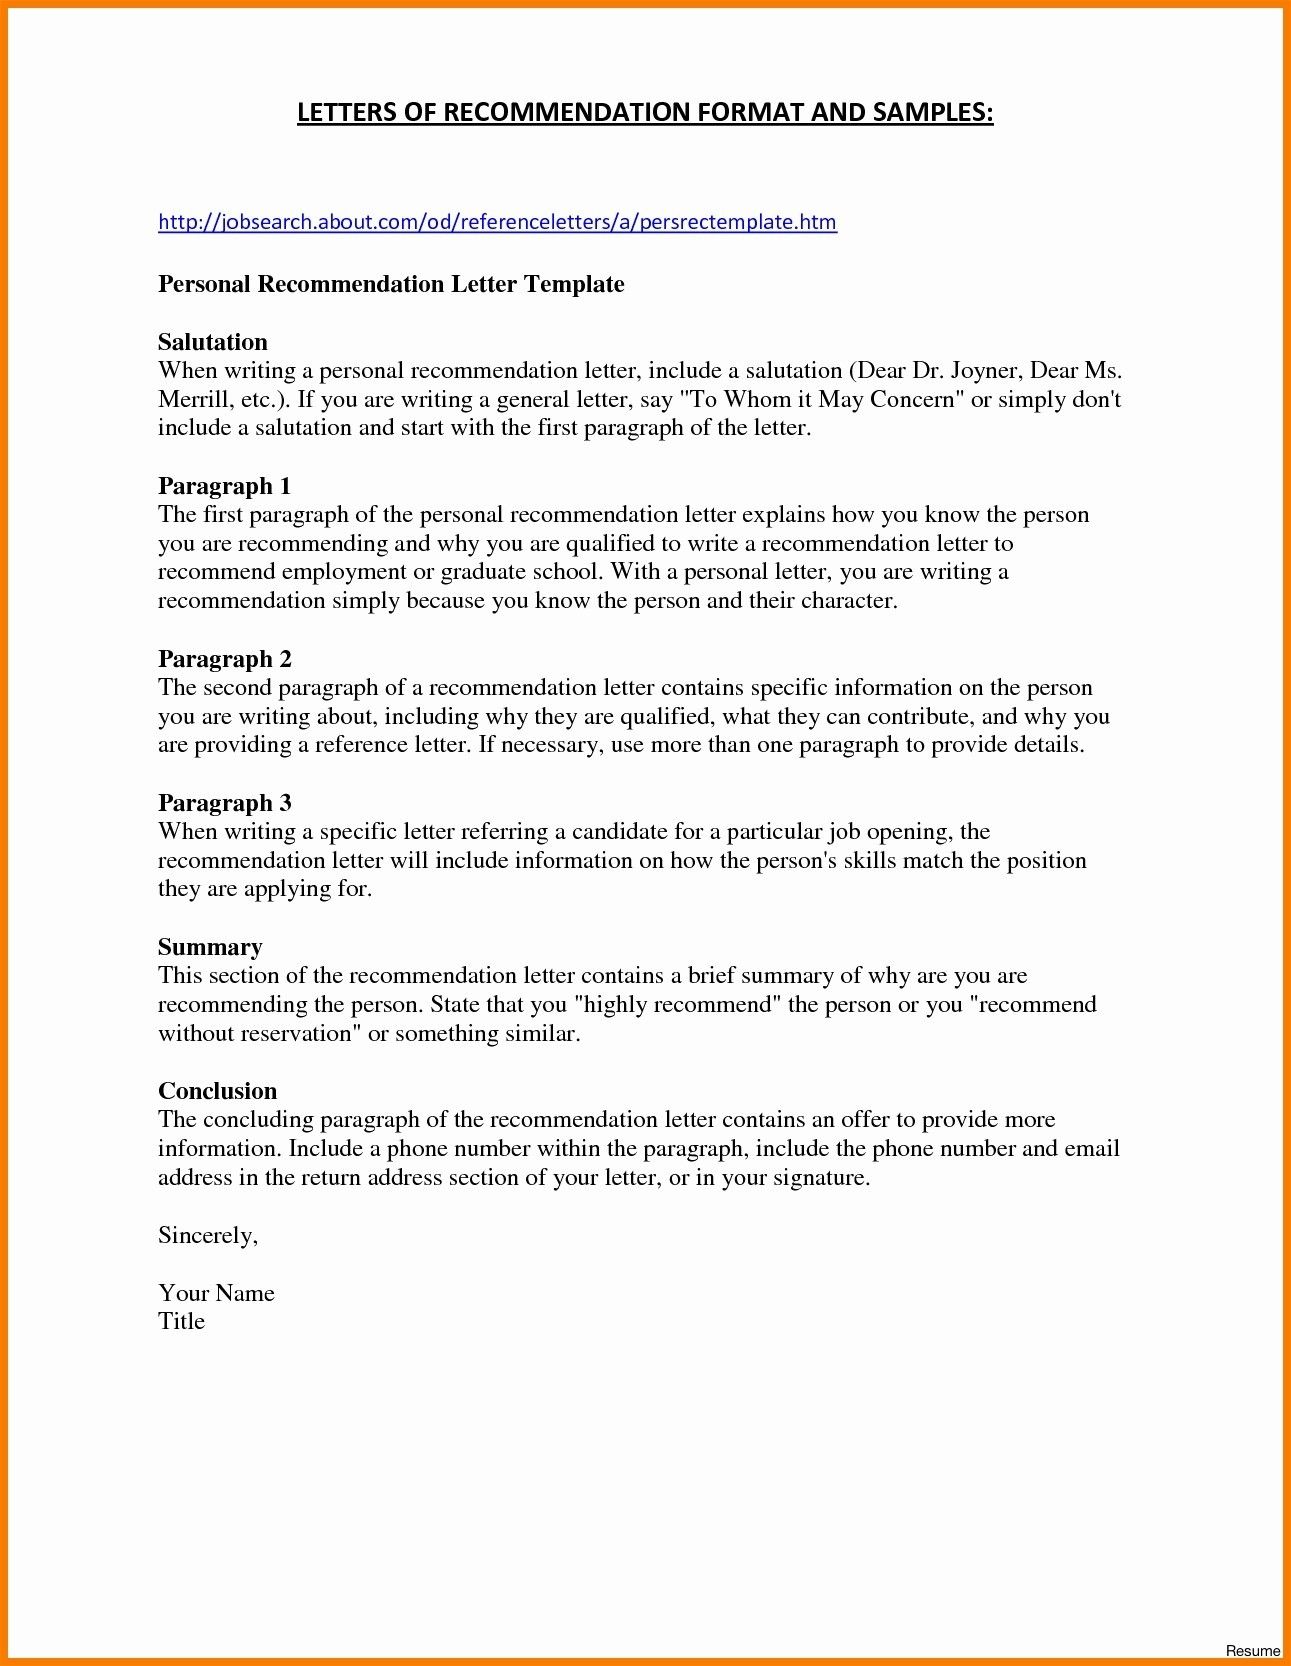 Consignment Letter Template - Post Your Resume Inspirational Should I Use A Resume Template